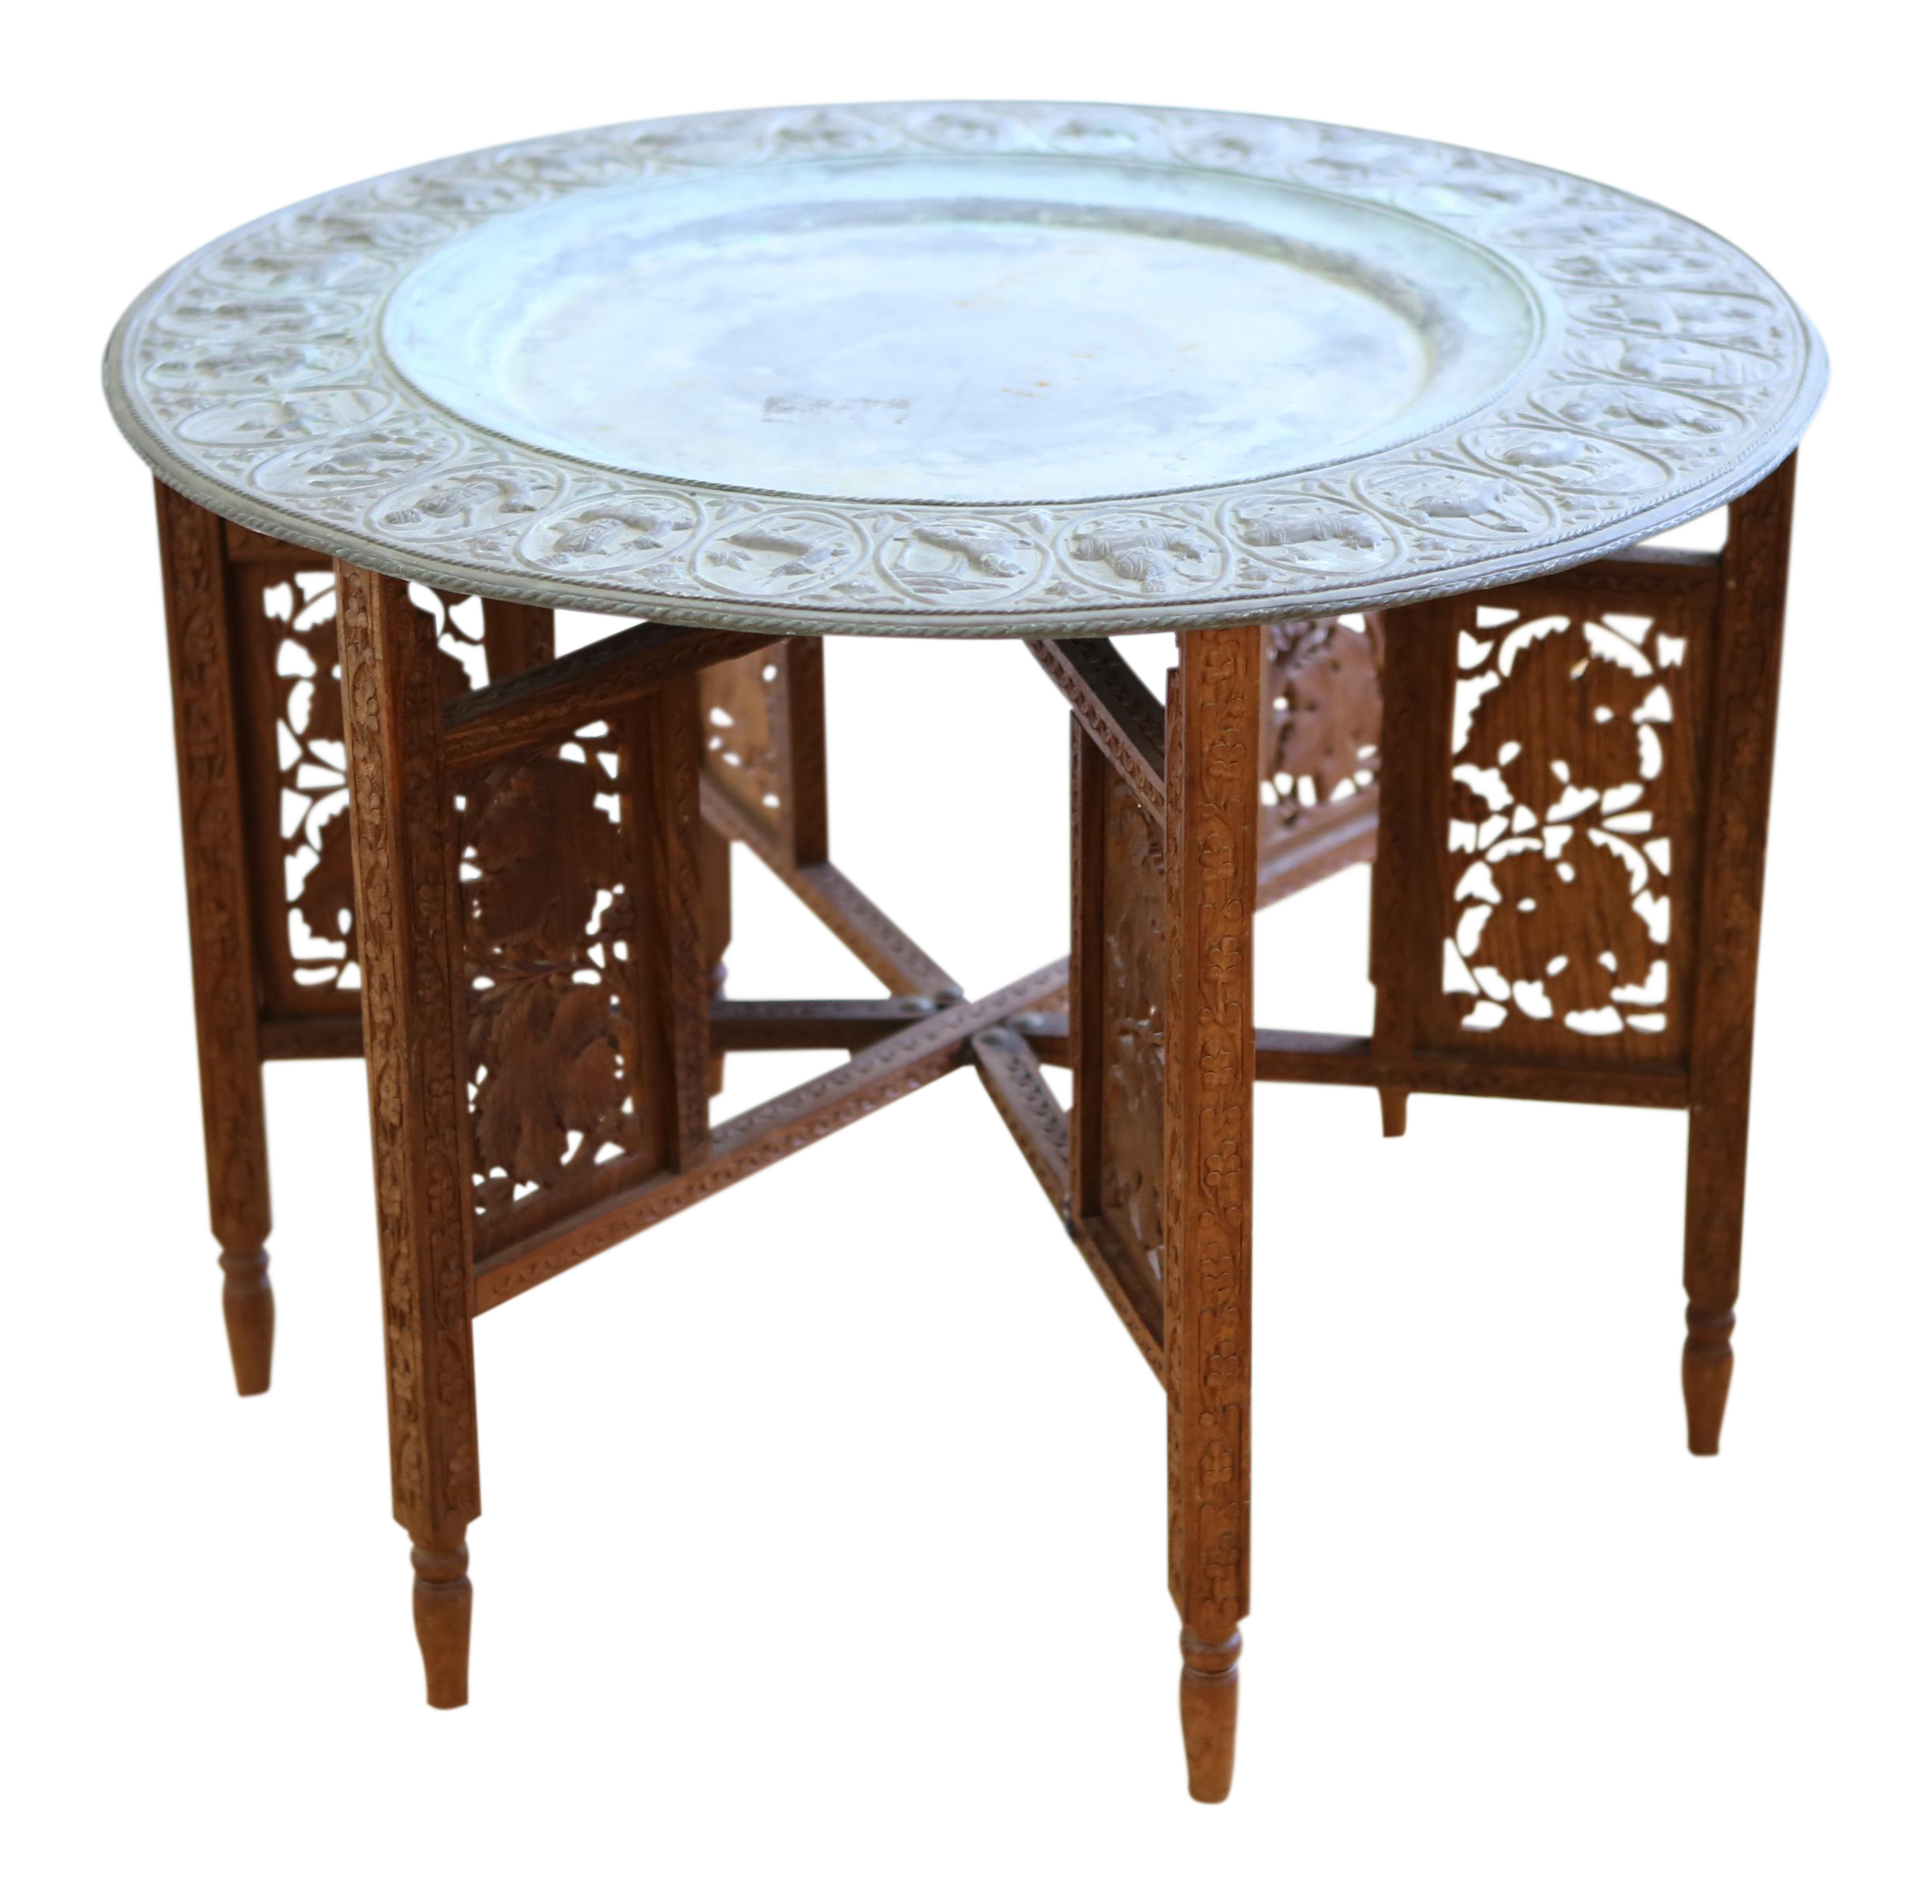 moroccan tray accent table chairish colonial miniature tiffany lamps lime green coffee pier one chair covers counter height dining set black marble ikea storage shelves with bins